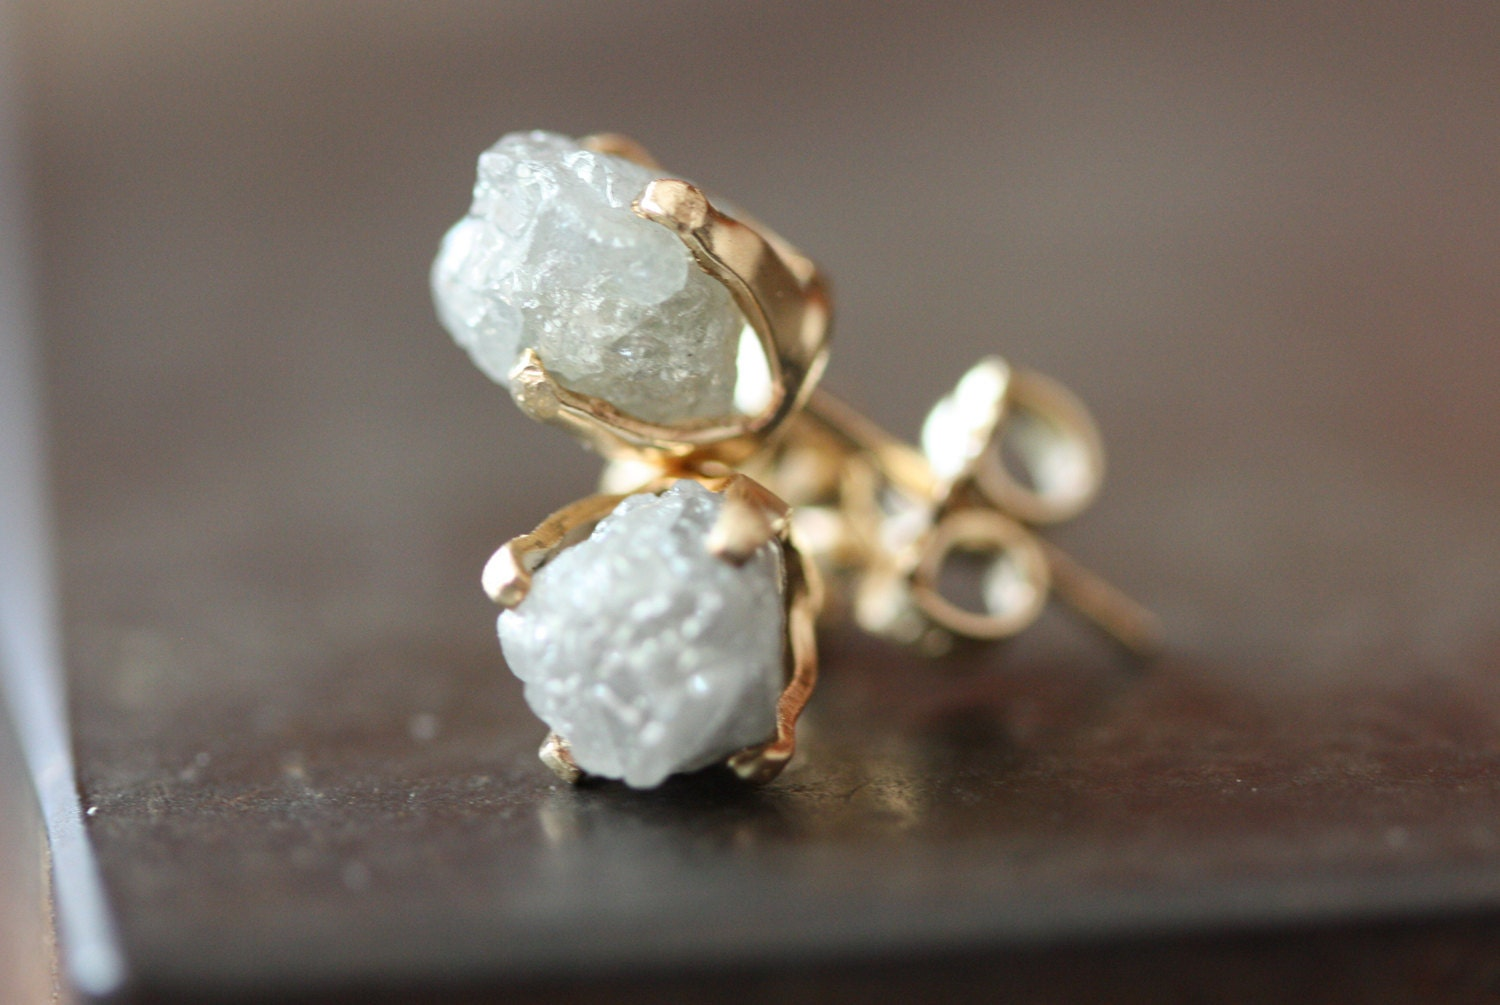 Raw Rough Diamond And Quotes: Rough Diamond Stud Earrings In 14kt Gold As Seen In LUCKY